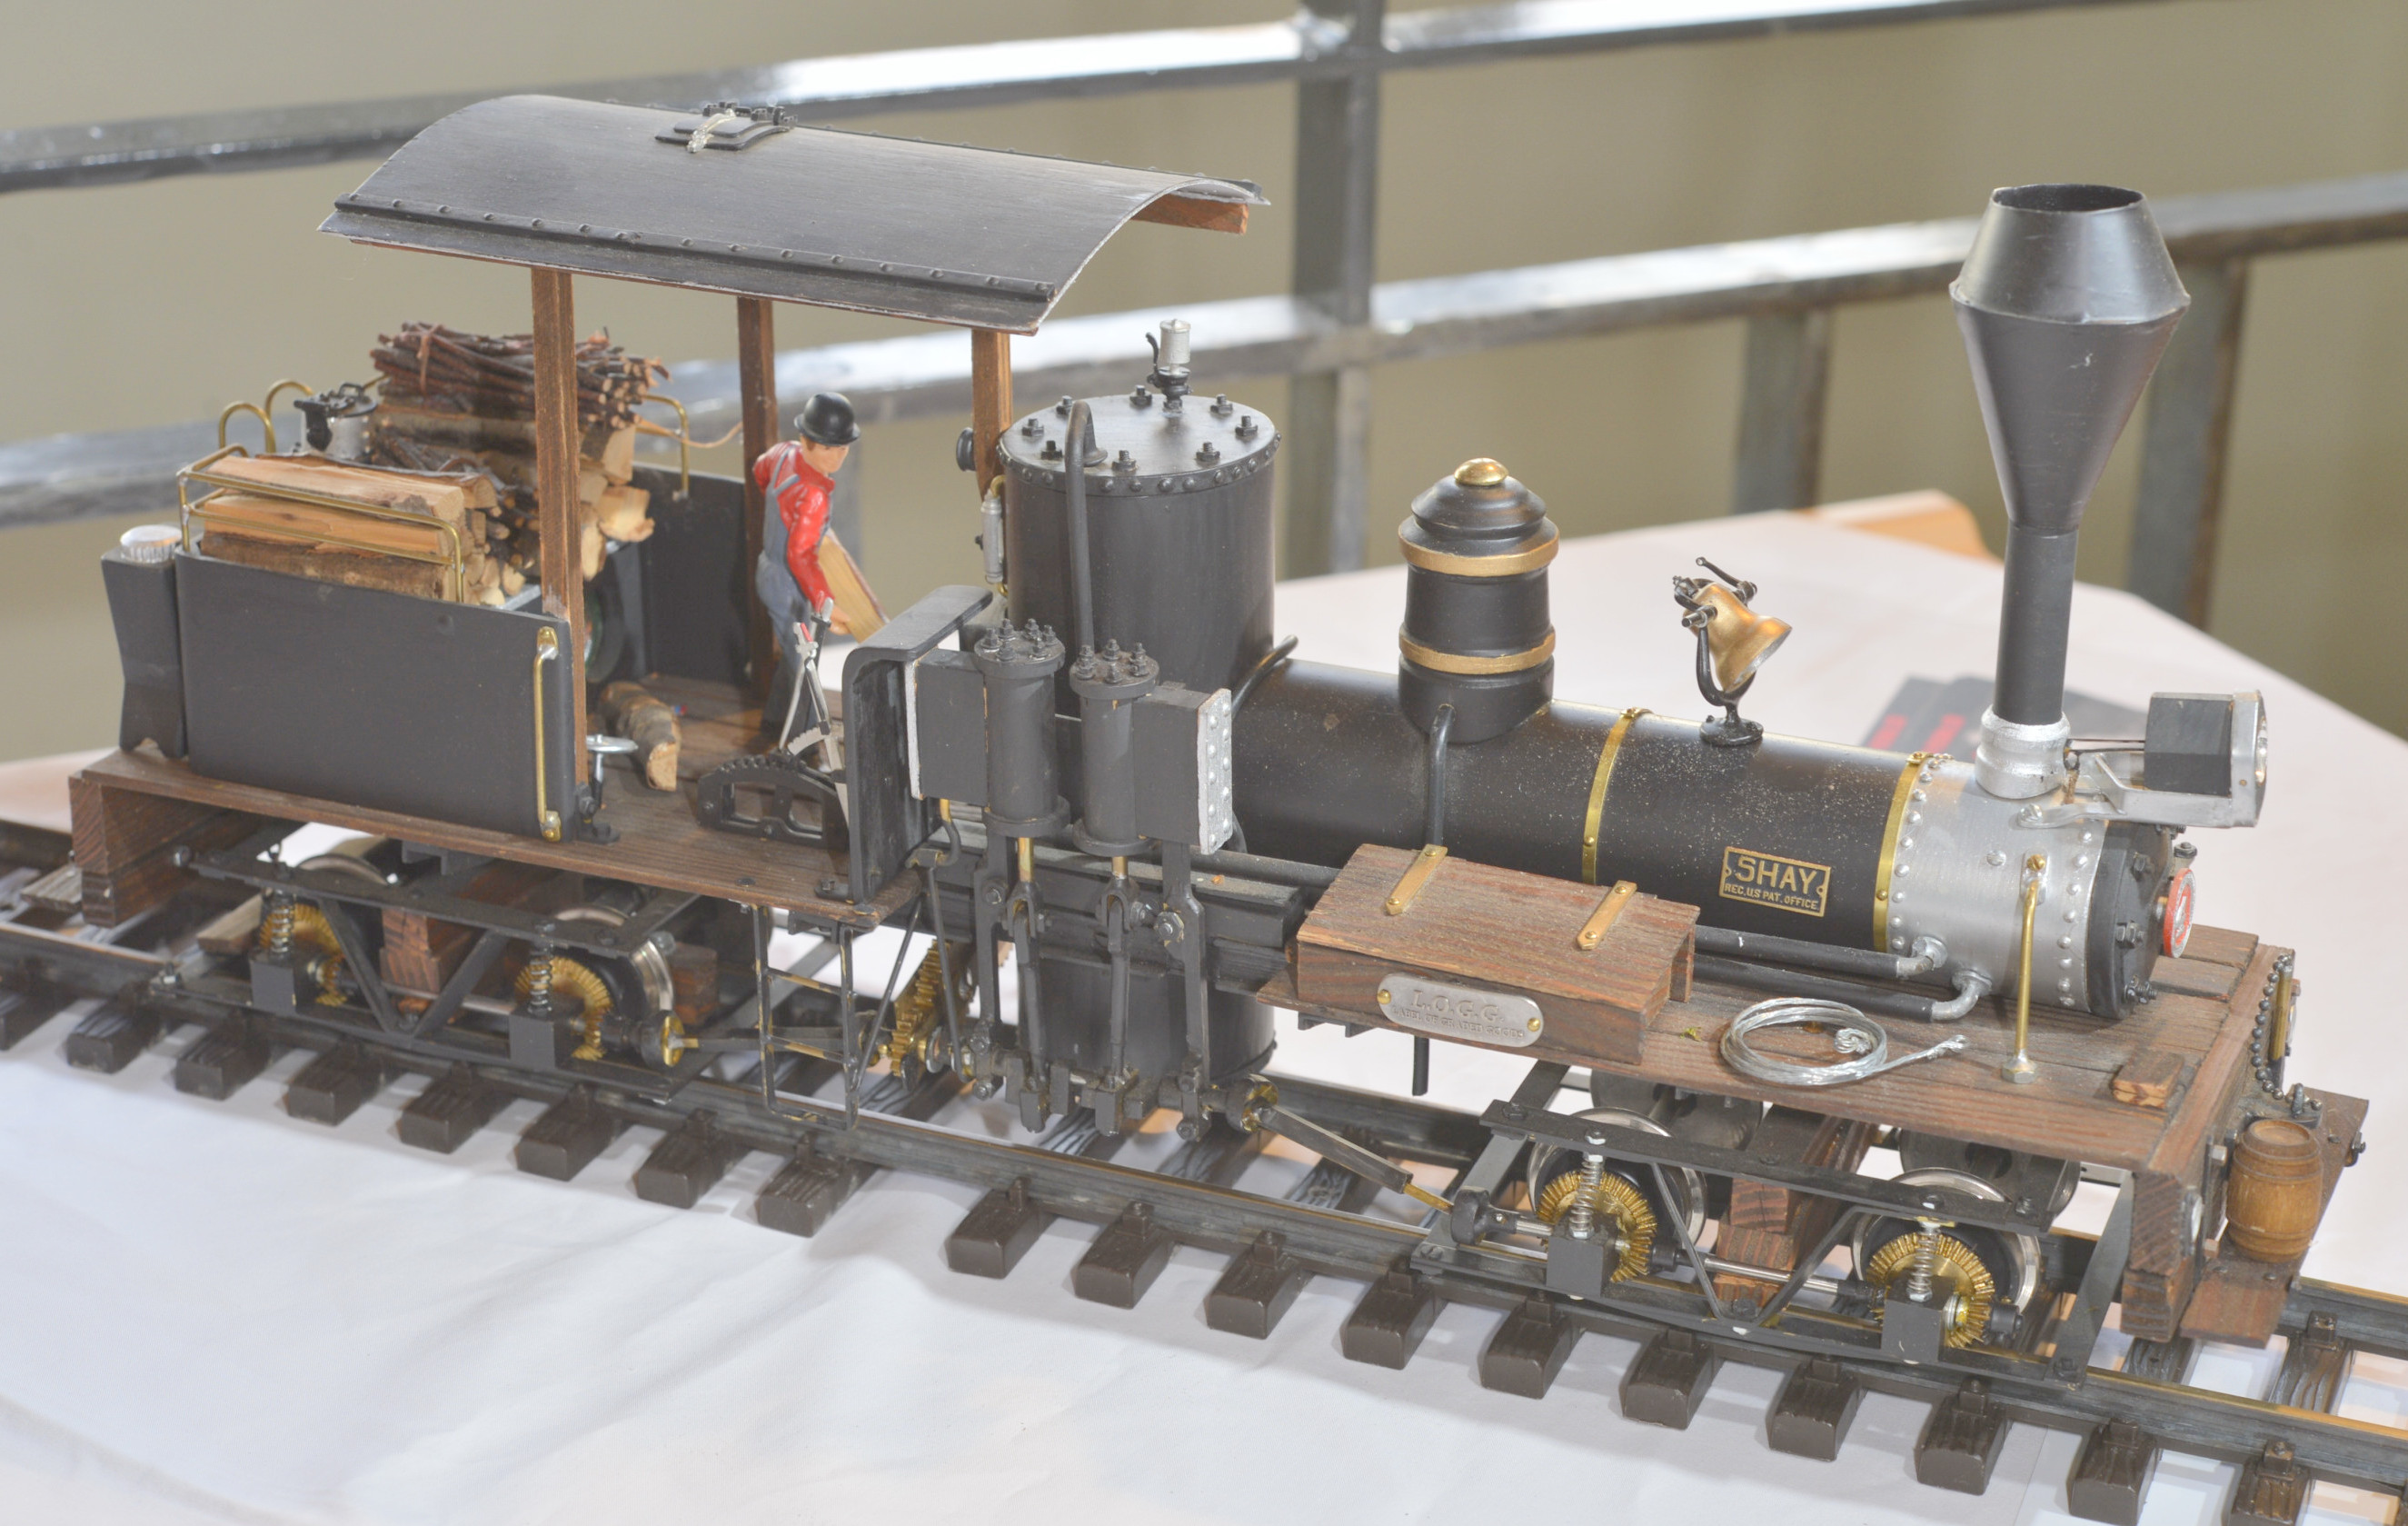 M Hintermann g Scale bild 011